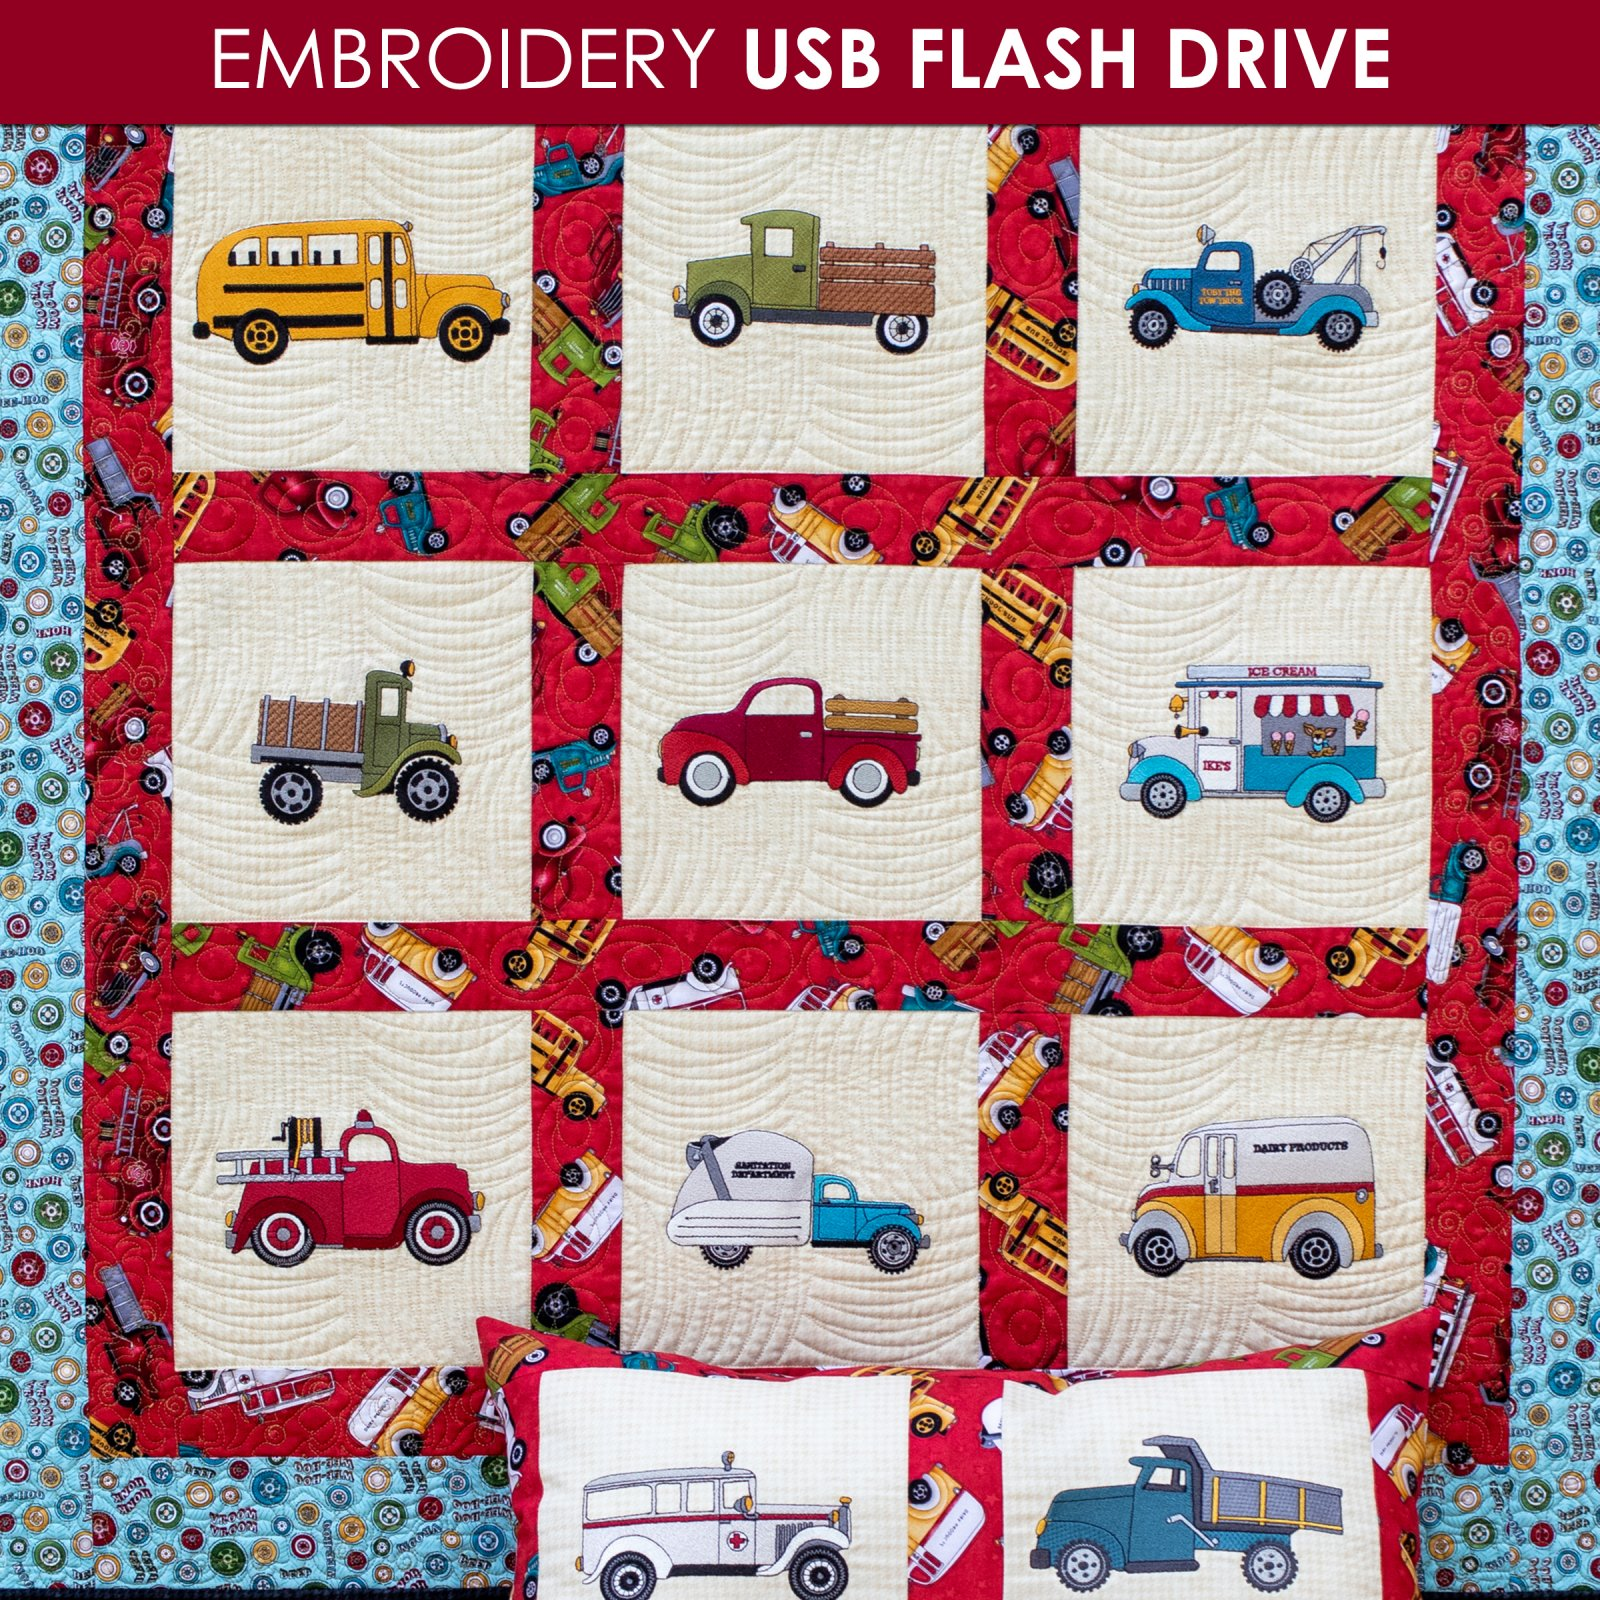 Papa's Old Truck Embroidery - USB